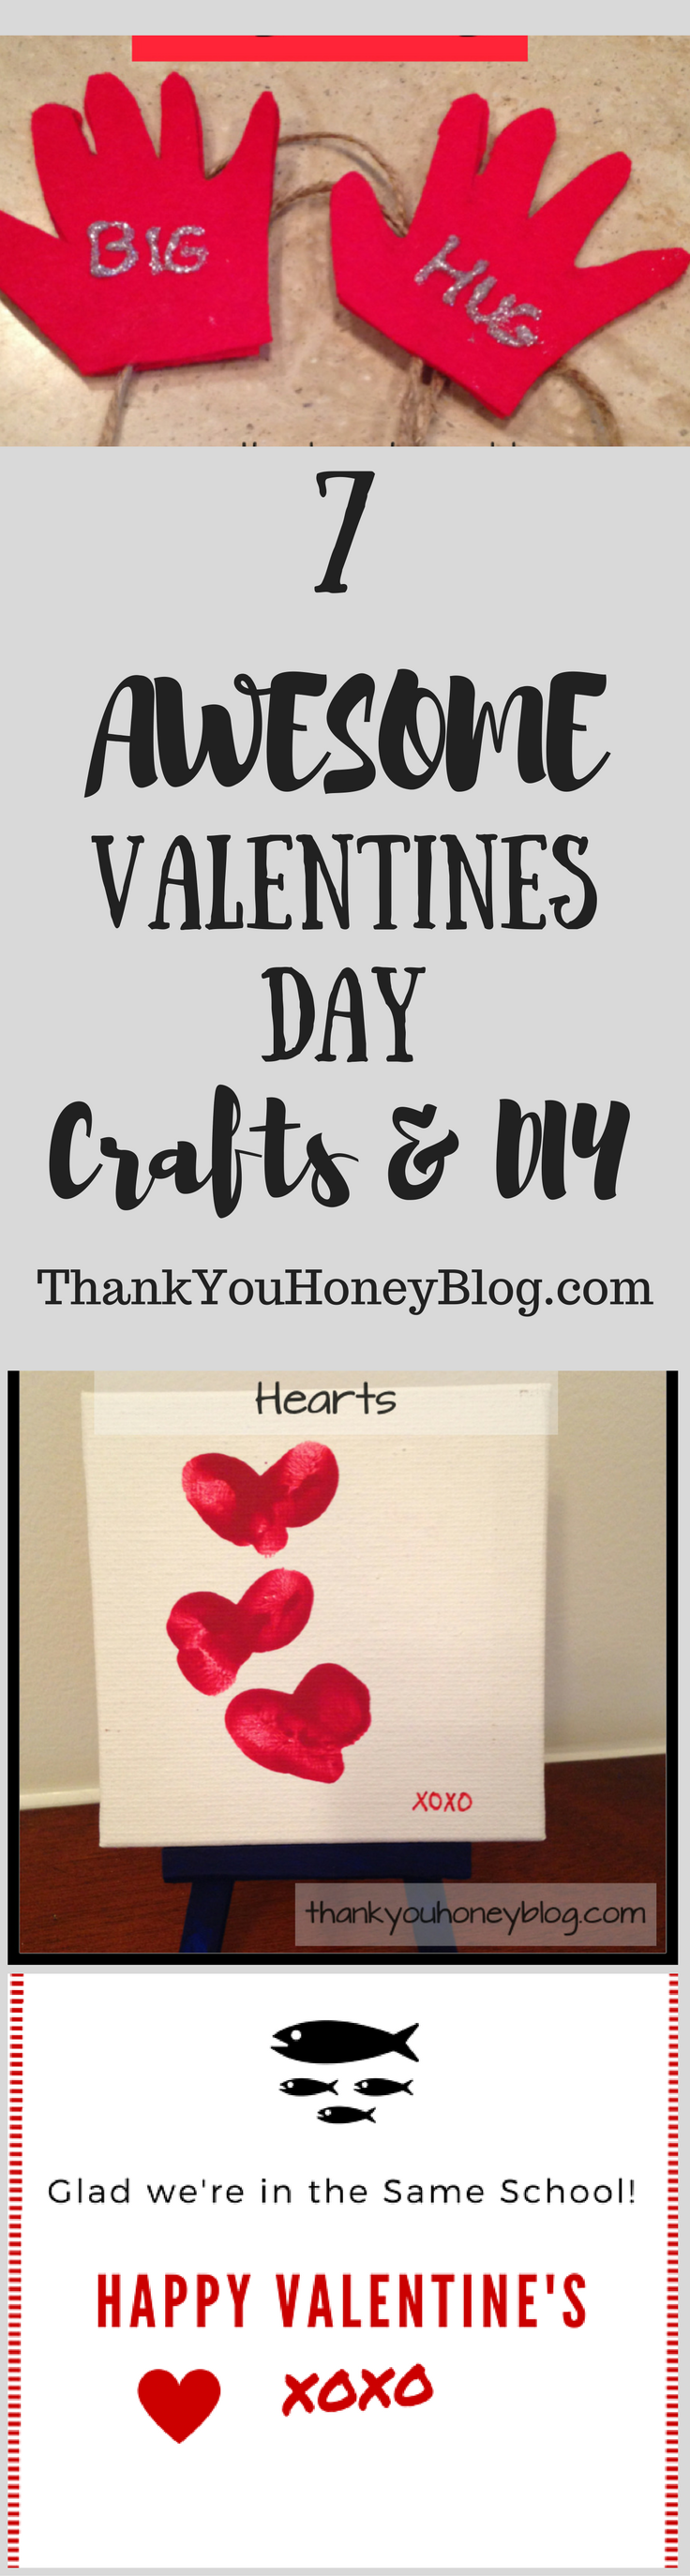 7 AWESOME Valentines Day Crafts & DIY